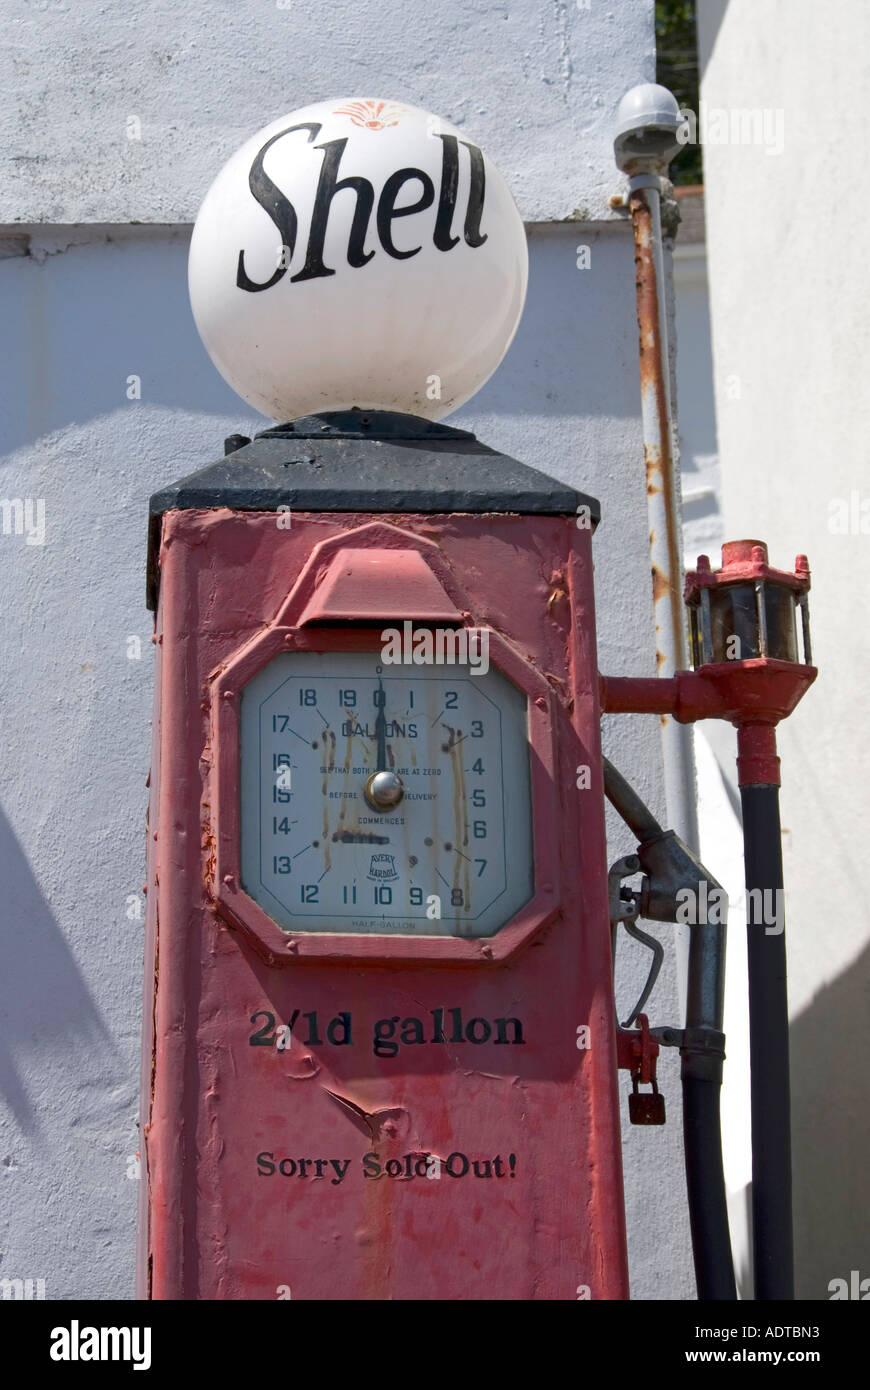 St Mawes one time petrol filling station still retains old Shell petrol pump displaying old shilling penny prices - Stock Image